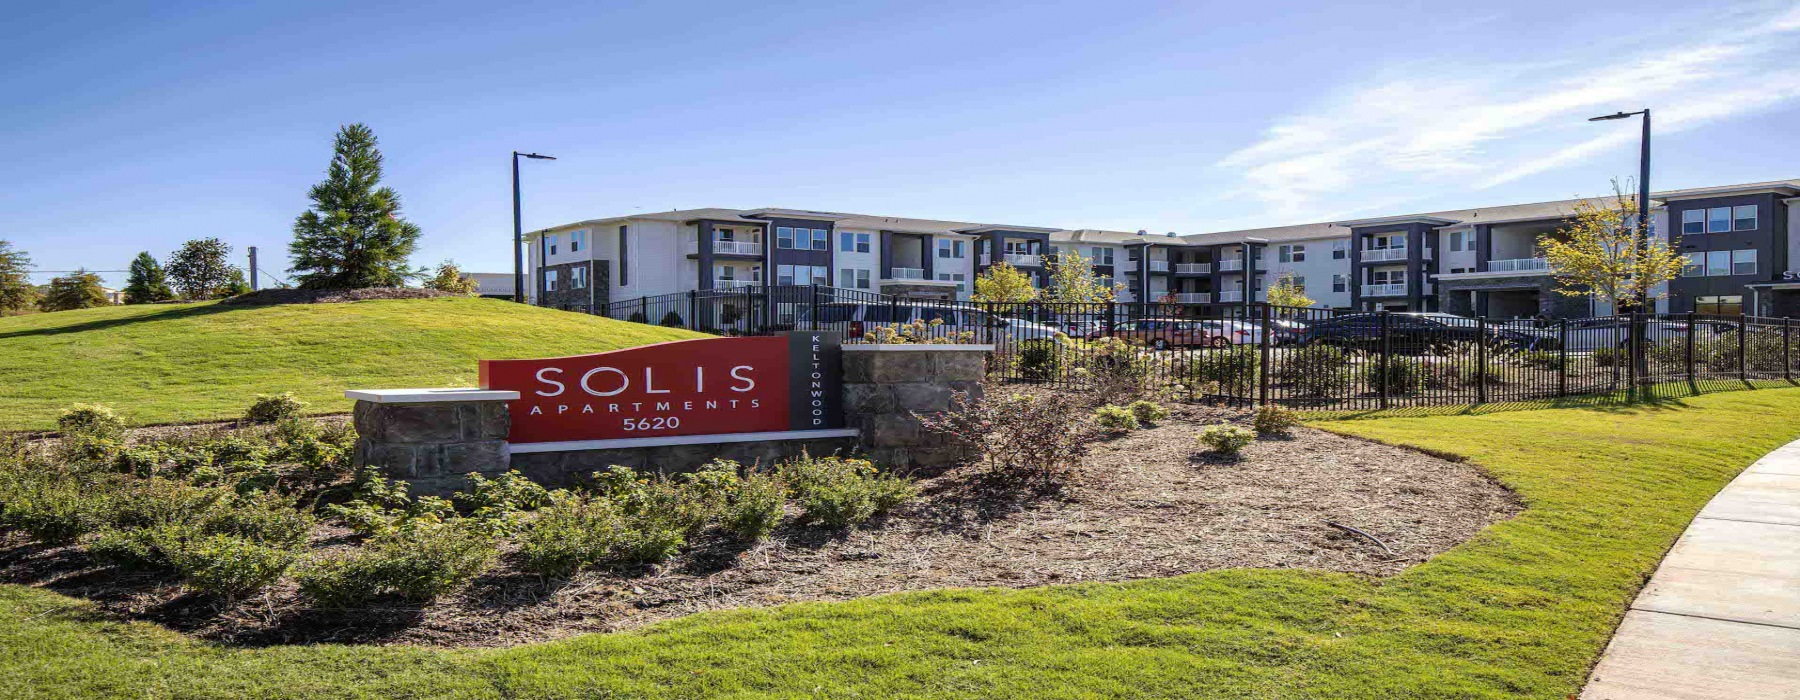 Solis Keltonwood front sign in a well-landscaped front area